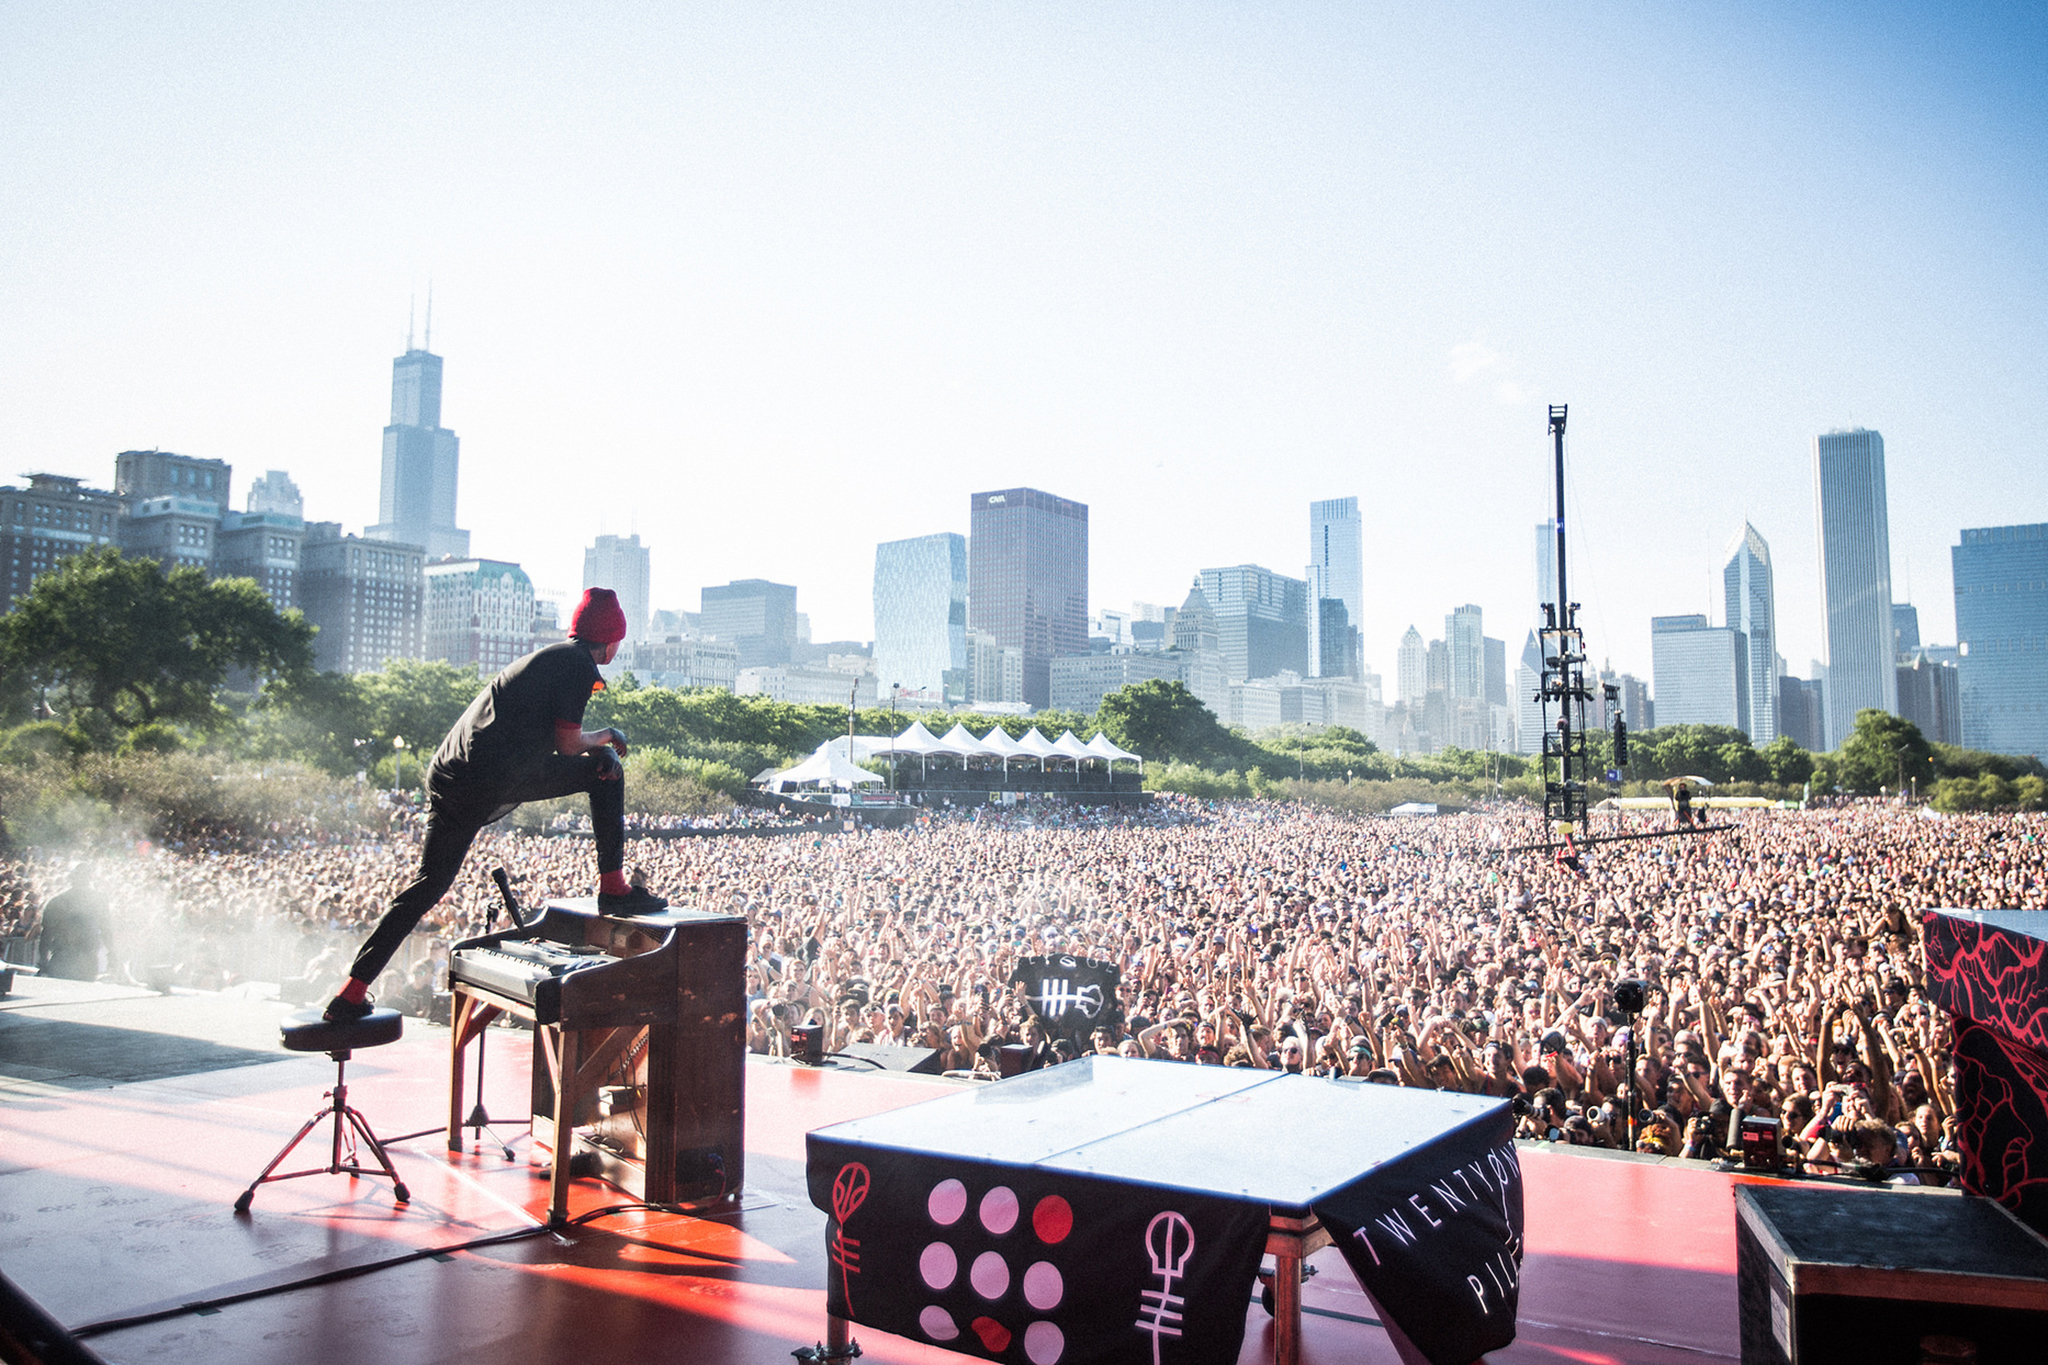 Lollapalooza's rise from touring festival to Chicago mainstay